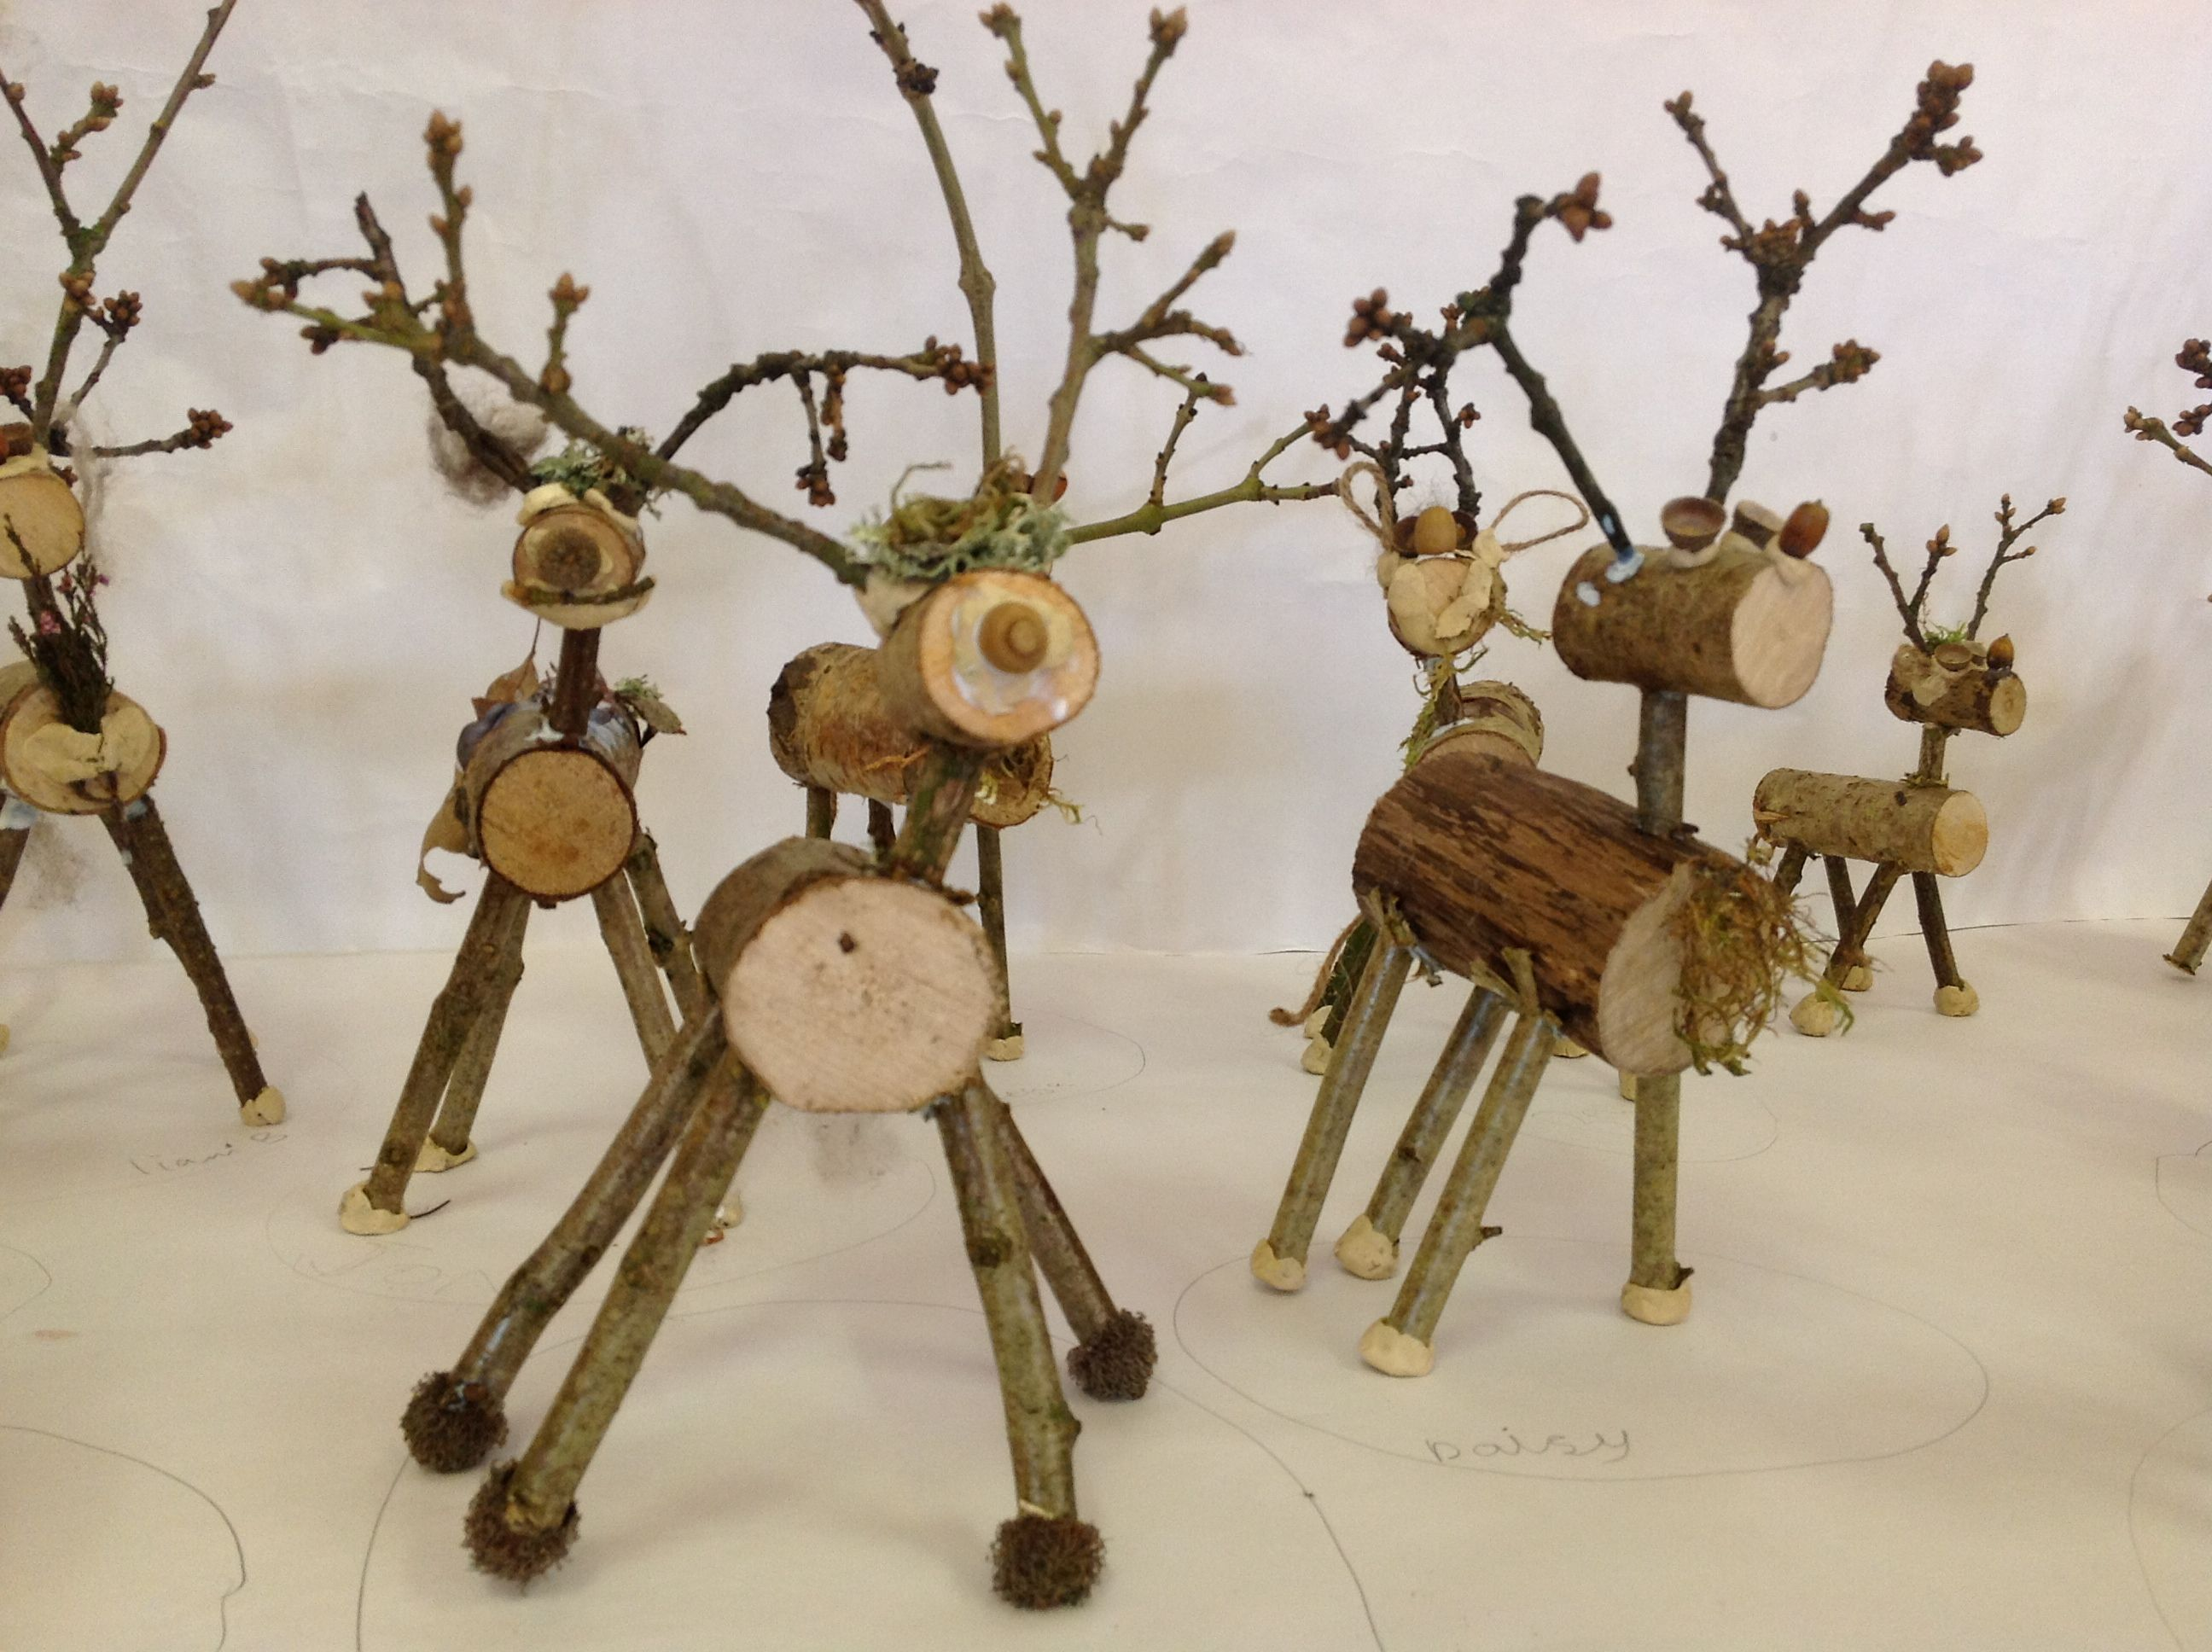 Stick reindeers made by children from natural materials at for Crafts made from nature